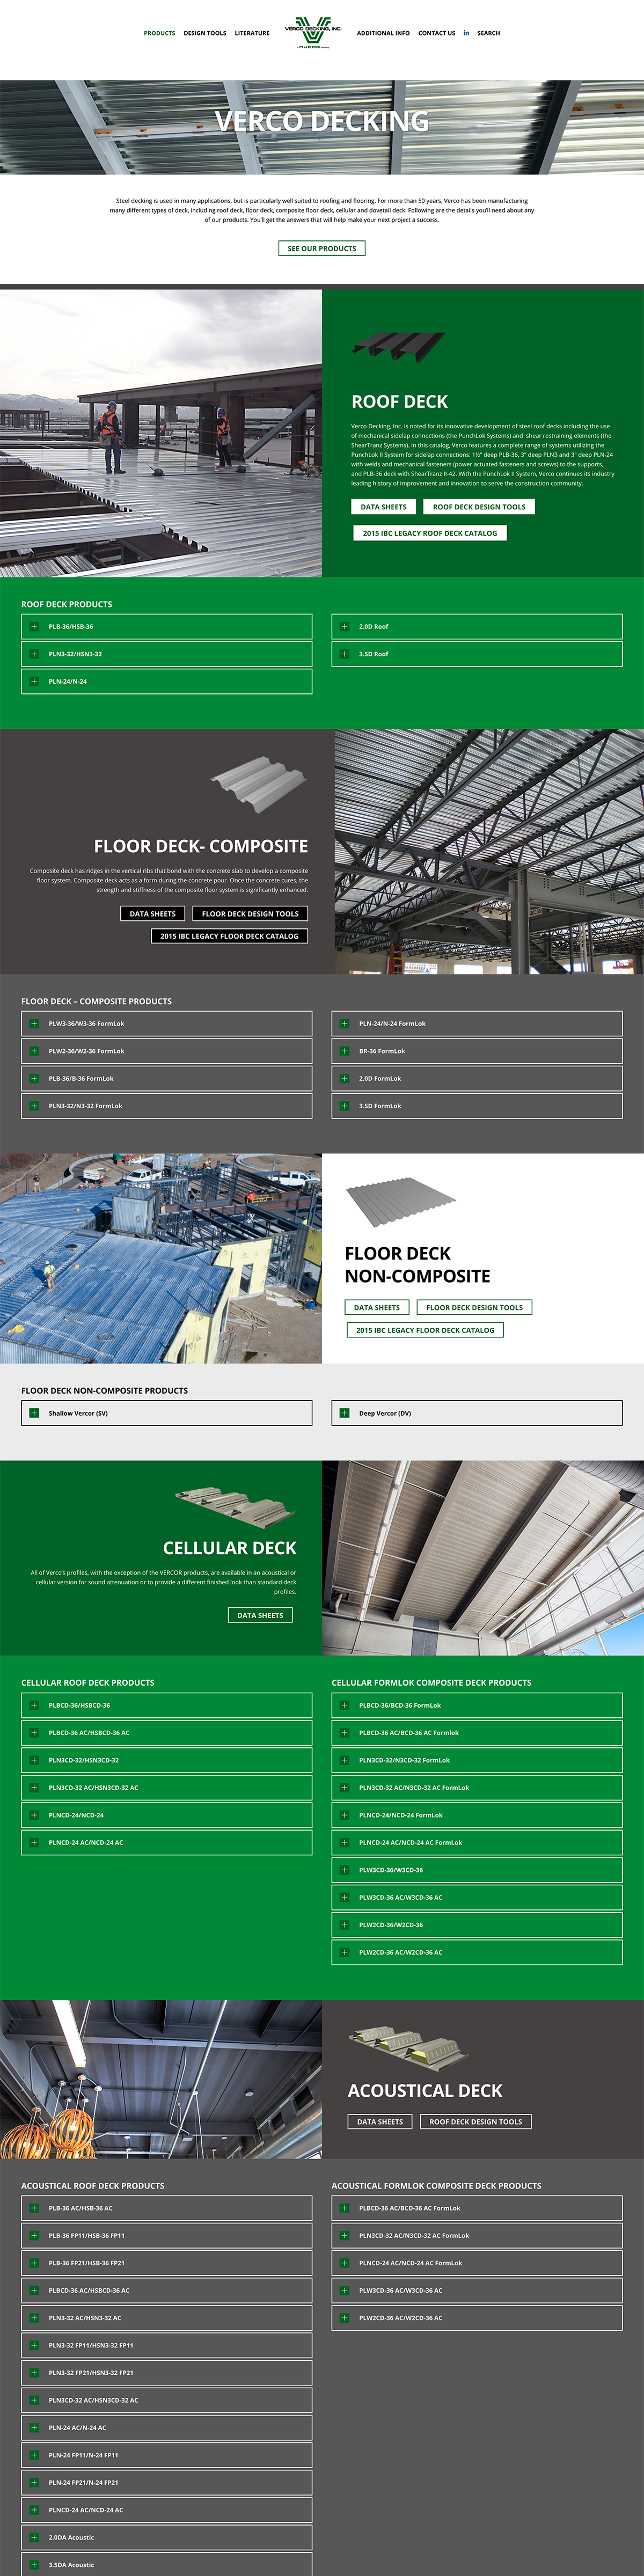 Screenshot of the Verco Decking website